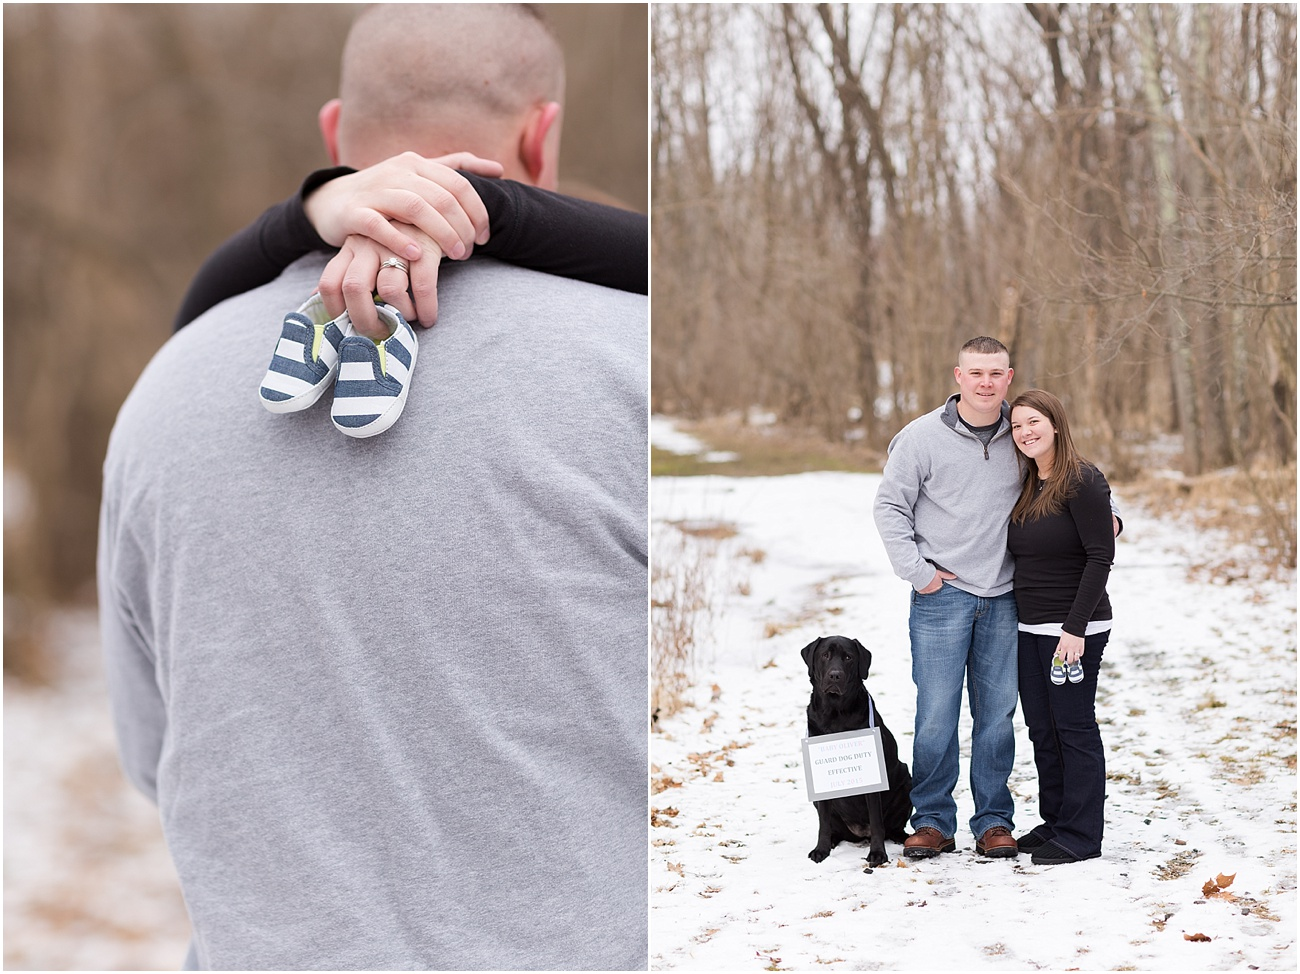 Baby_Announcement_Oregon_Ridge_Park_Maryland_0007